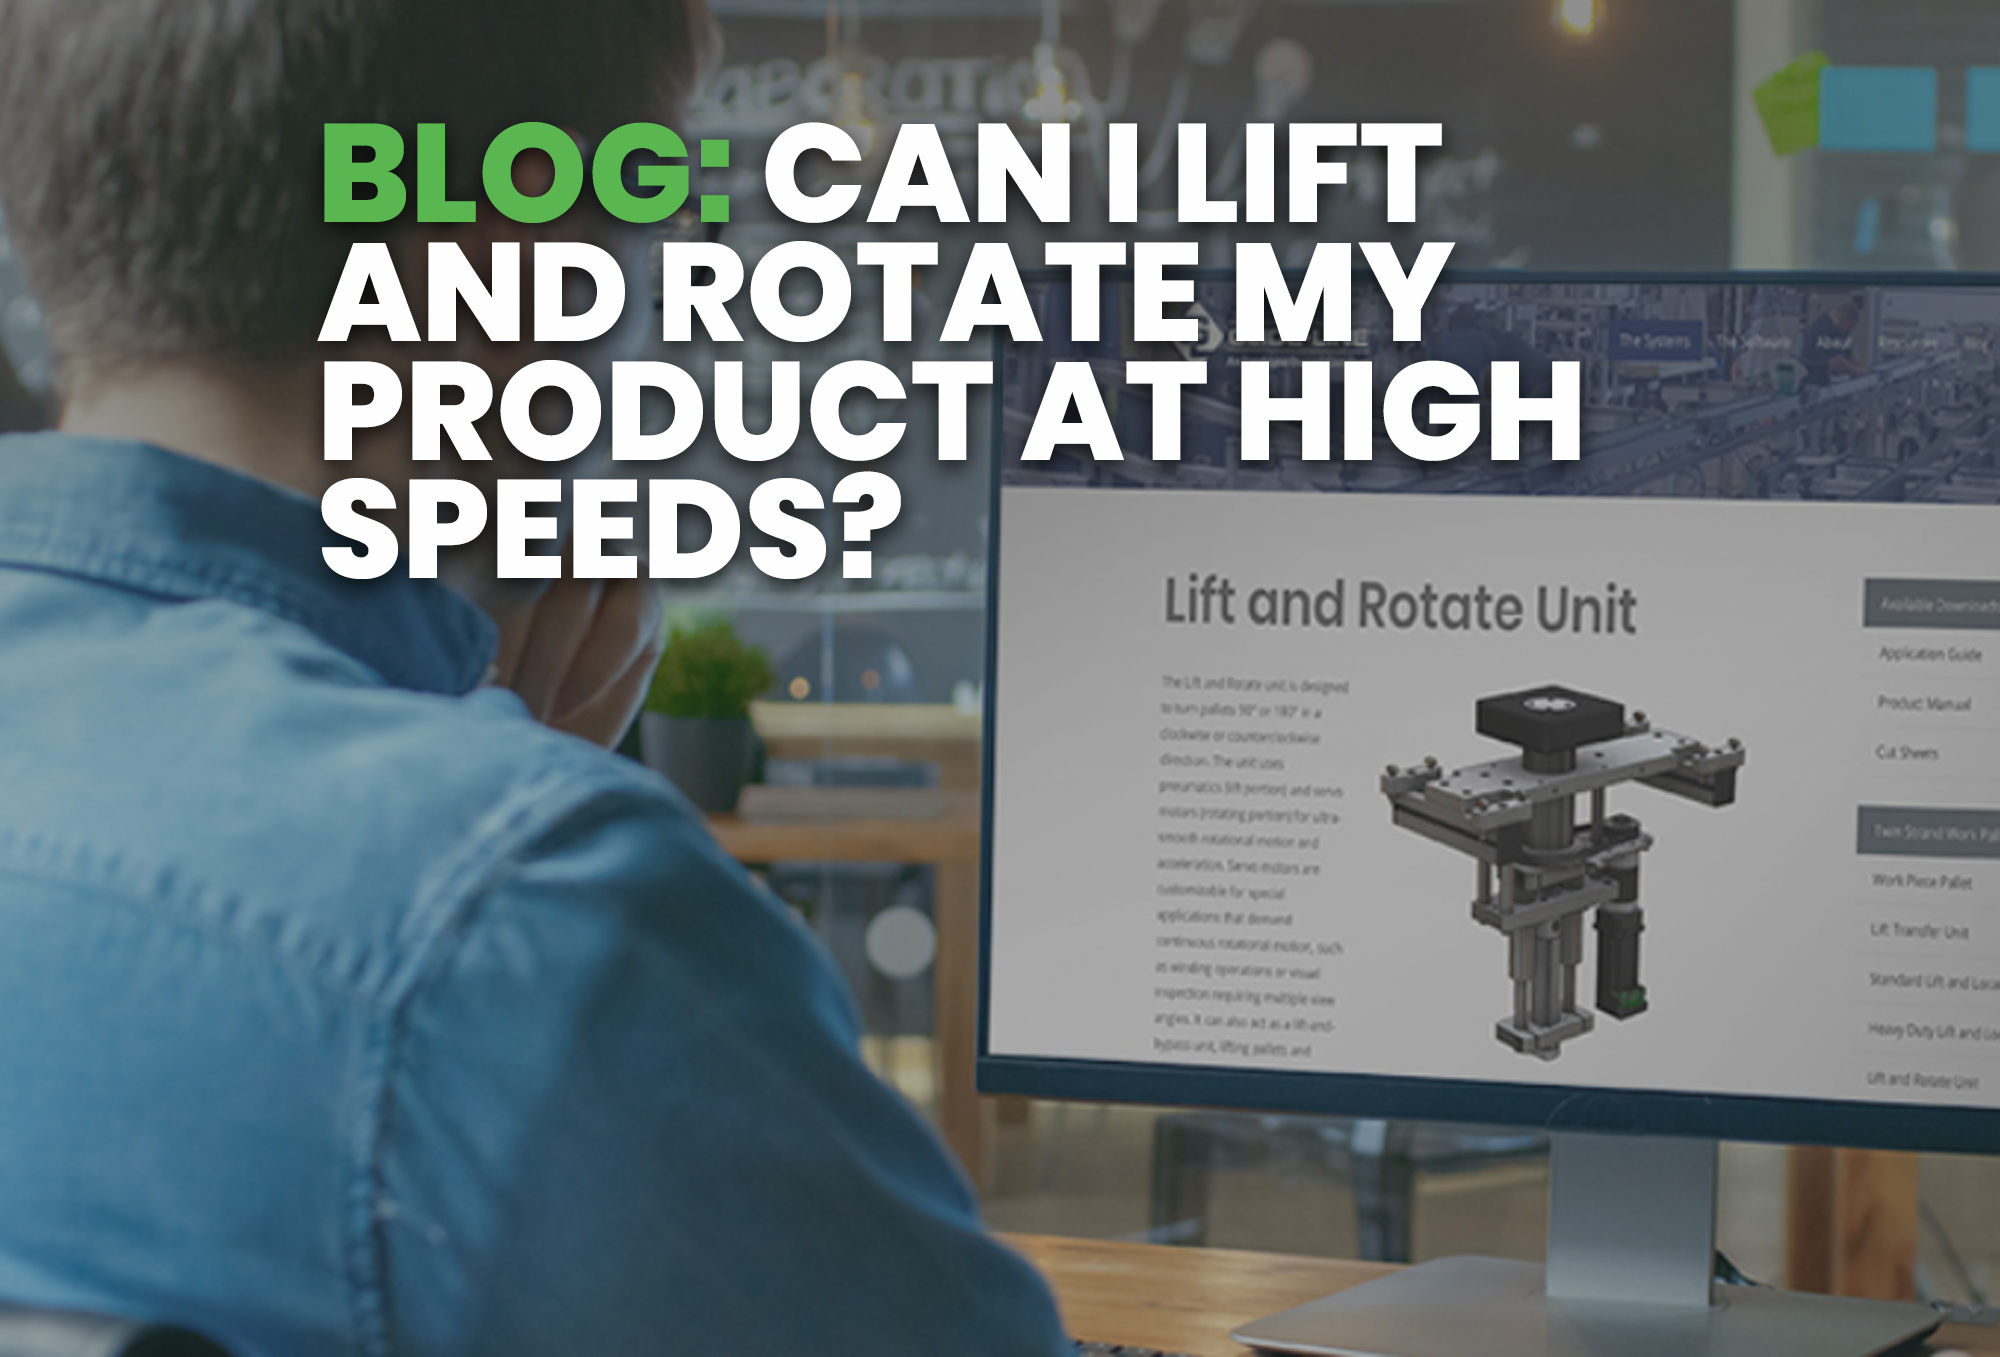 BLOG- Can I Lift and Rotate My Product at High Speeds?